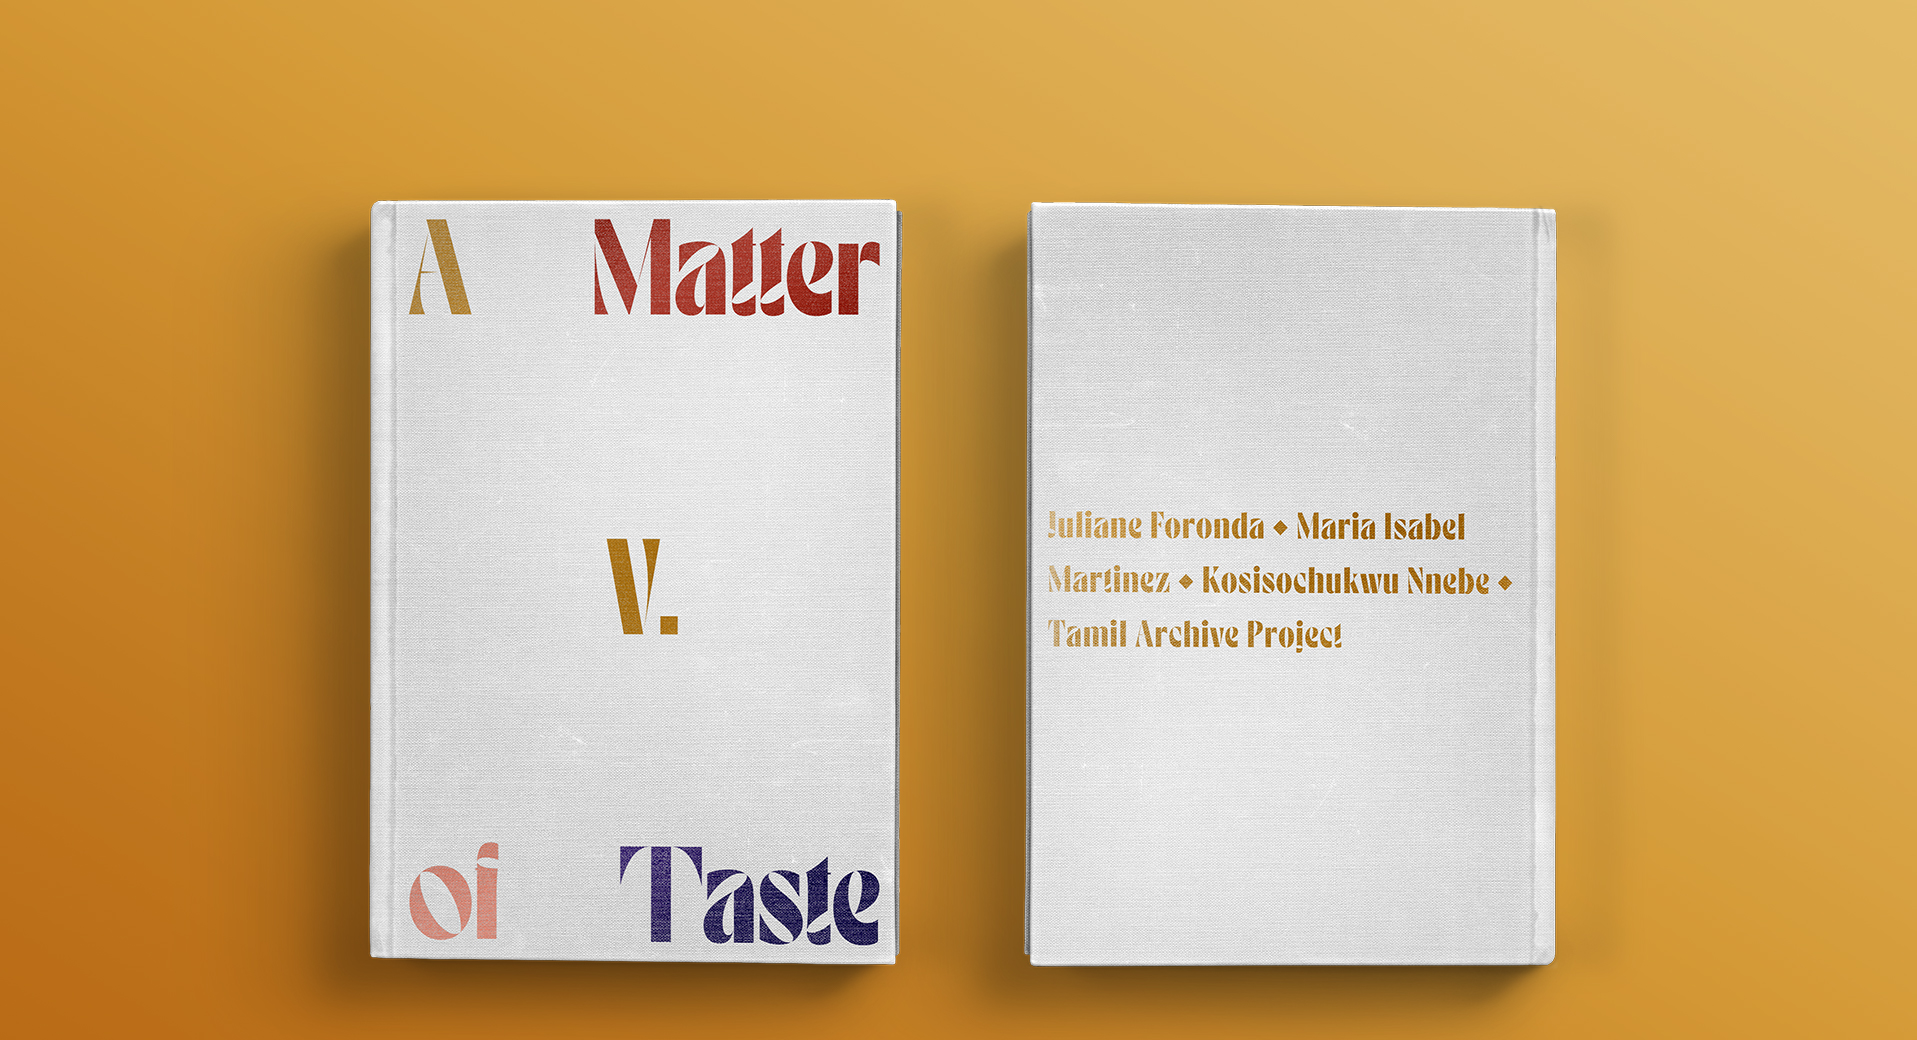 A Matter of Taste Chapter Five: Juliane Foronda, Maria Isabel Martinez, Kosisochukwu Nnebe, Tamil Archive Project